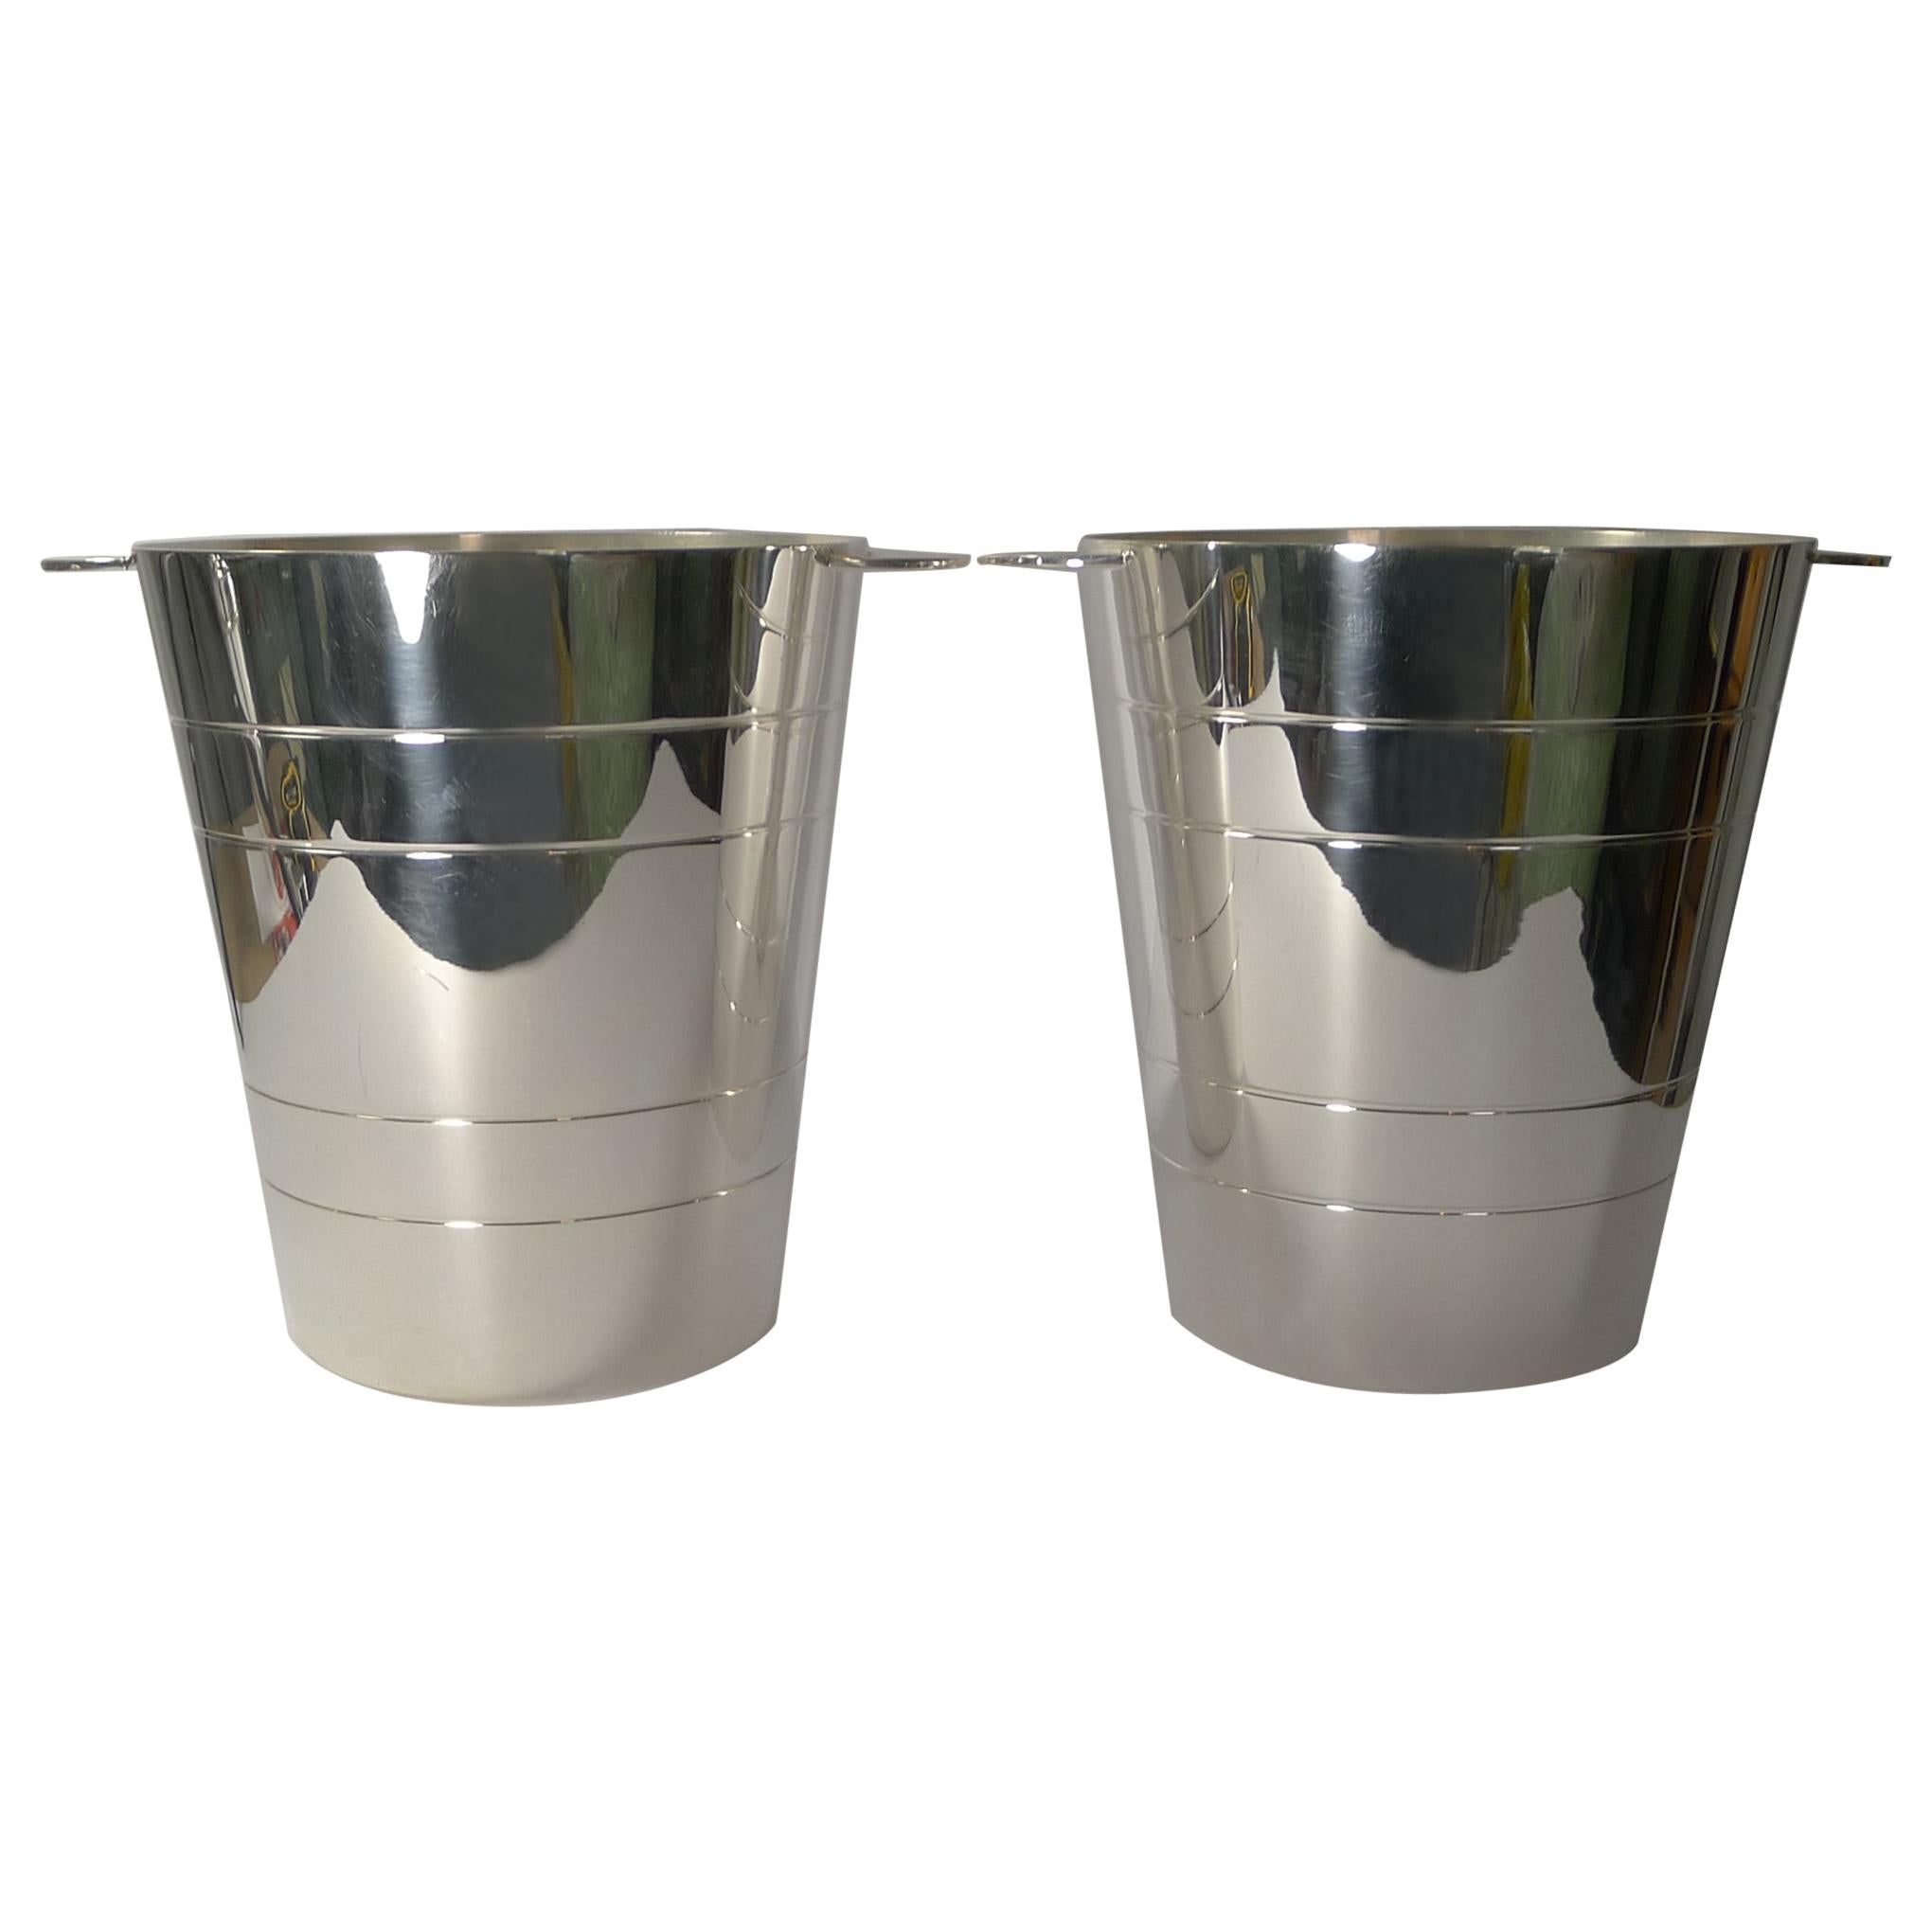 Fabulous Pair of Elkington Silver Plated Wine Coolers / Champagne Buckets